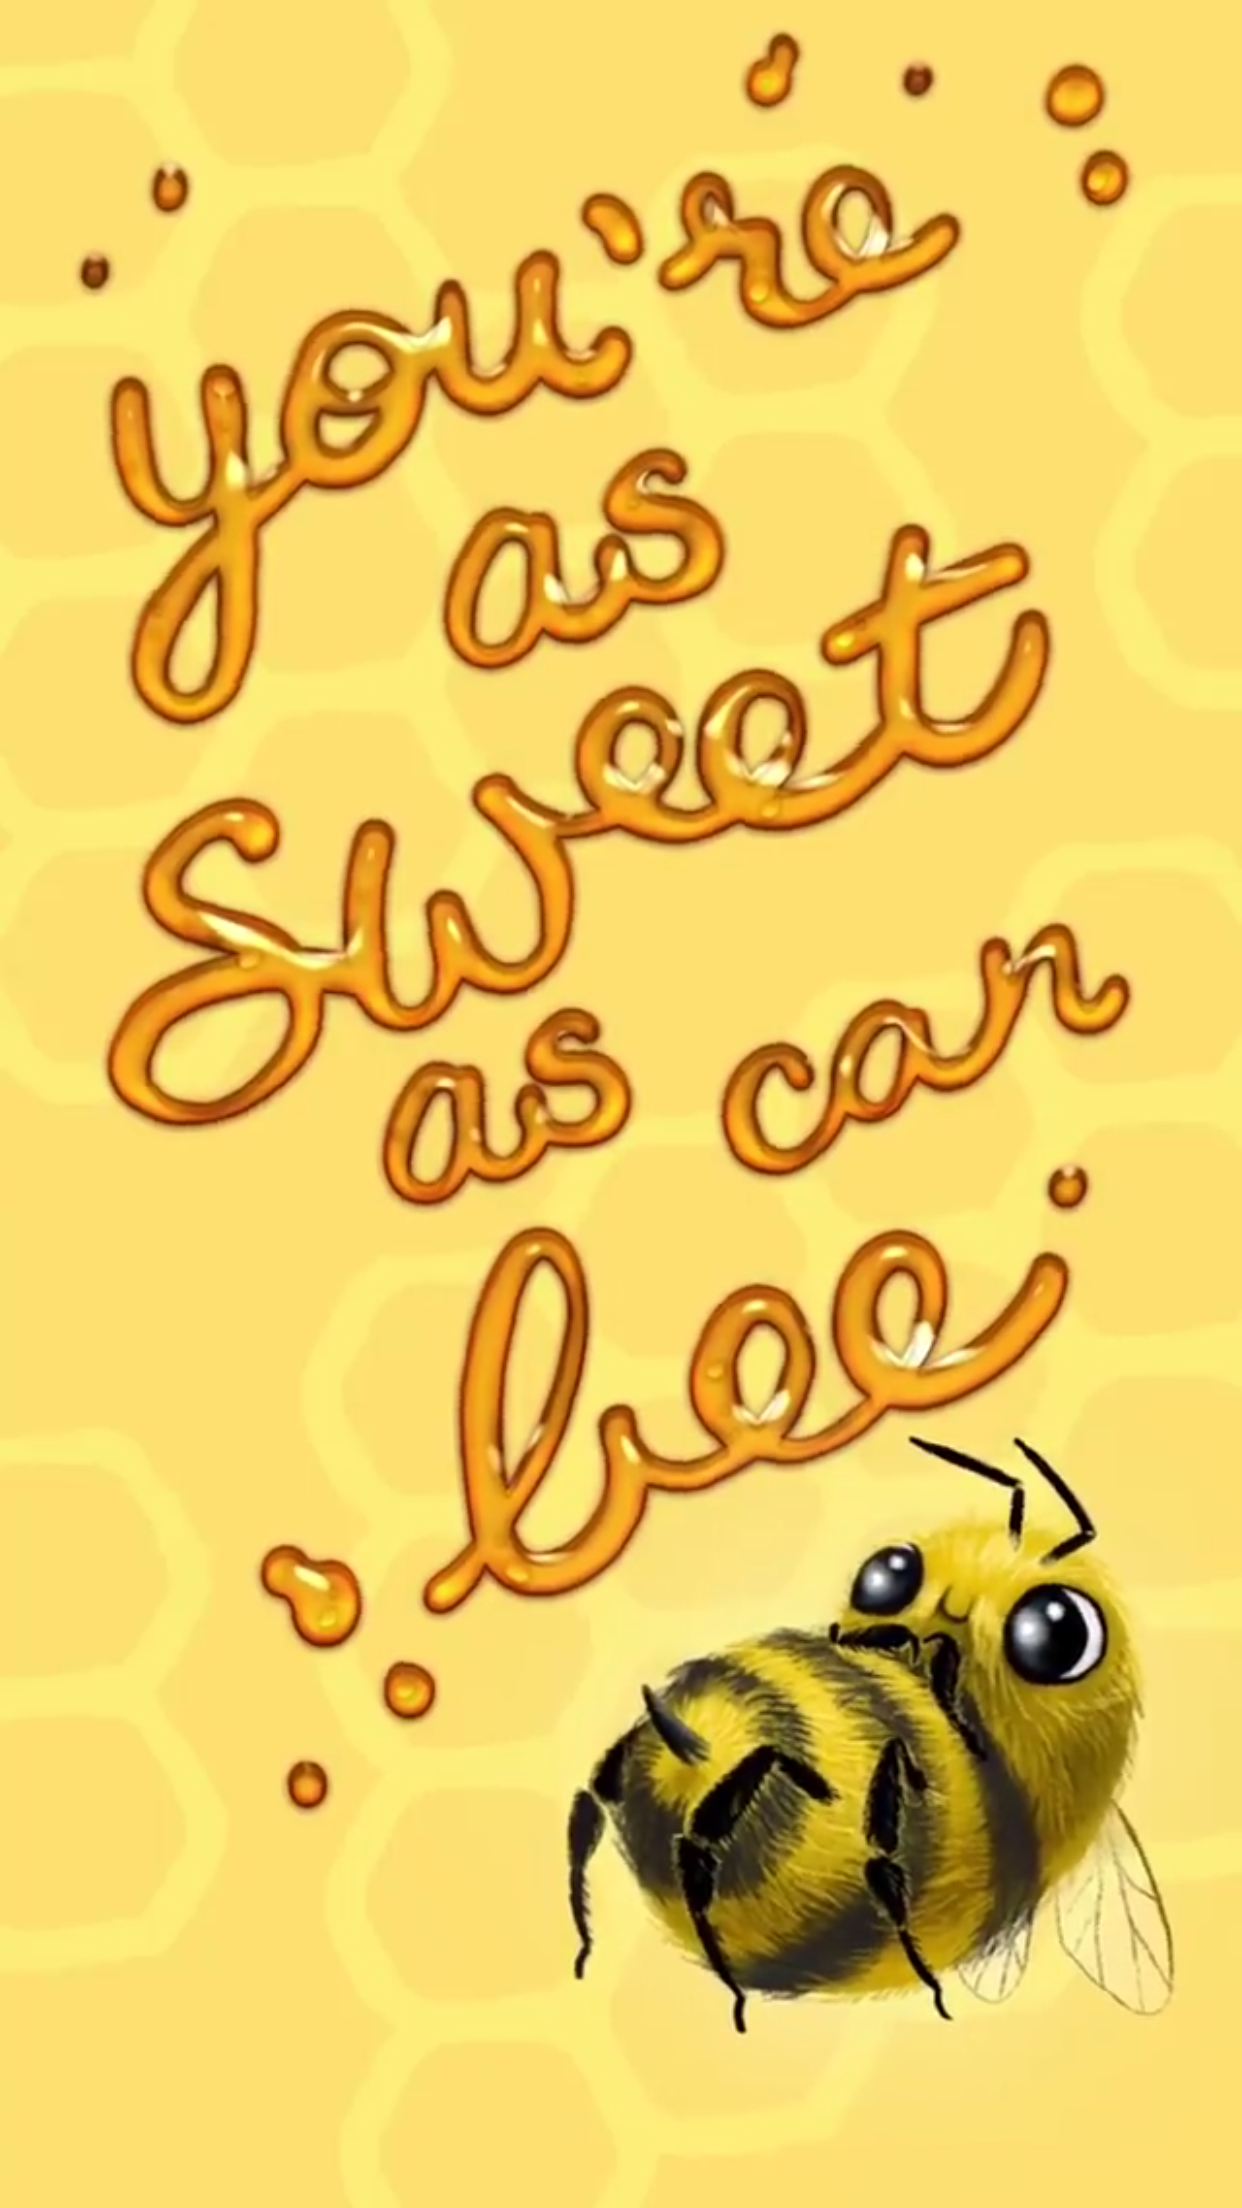 You're as sweet as can bee honey bee pun, lock screen